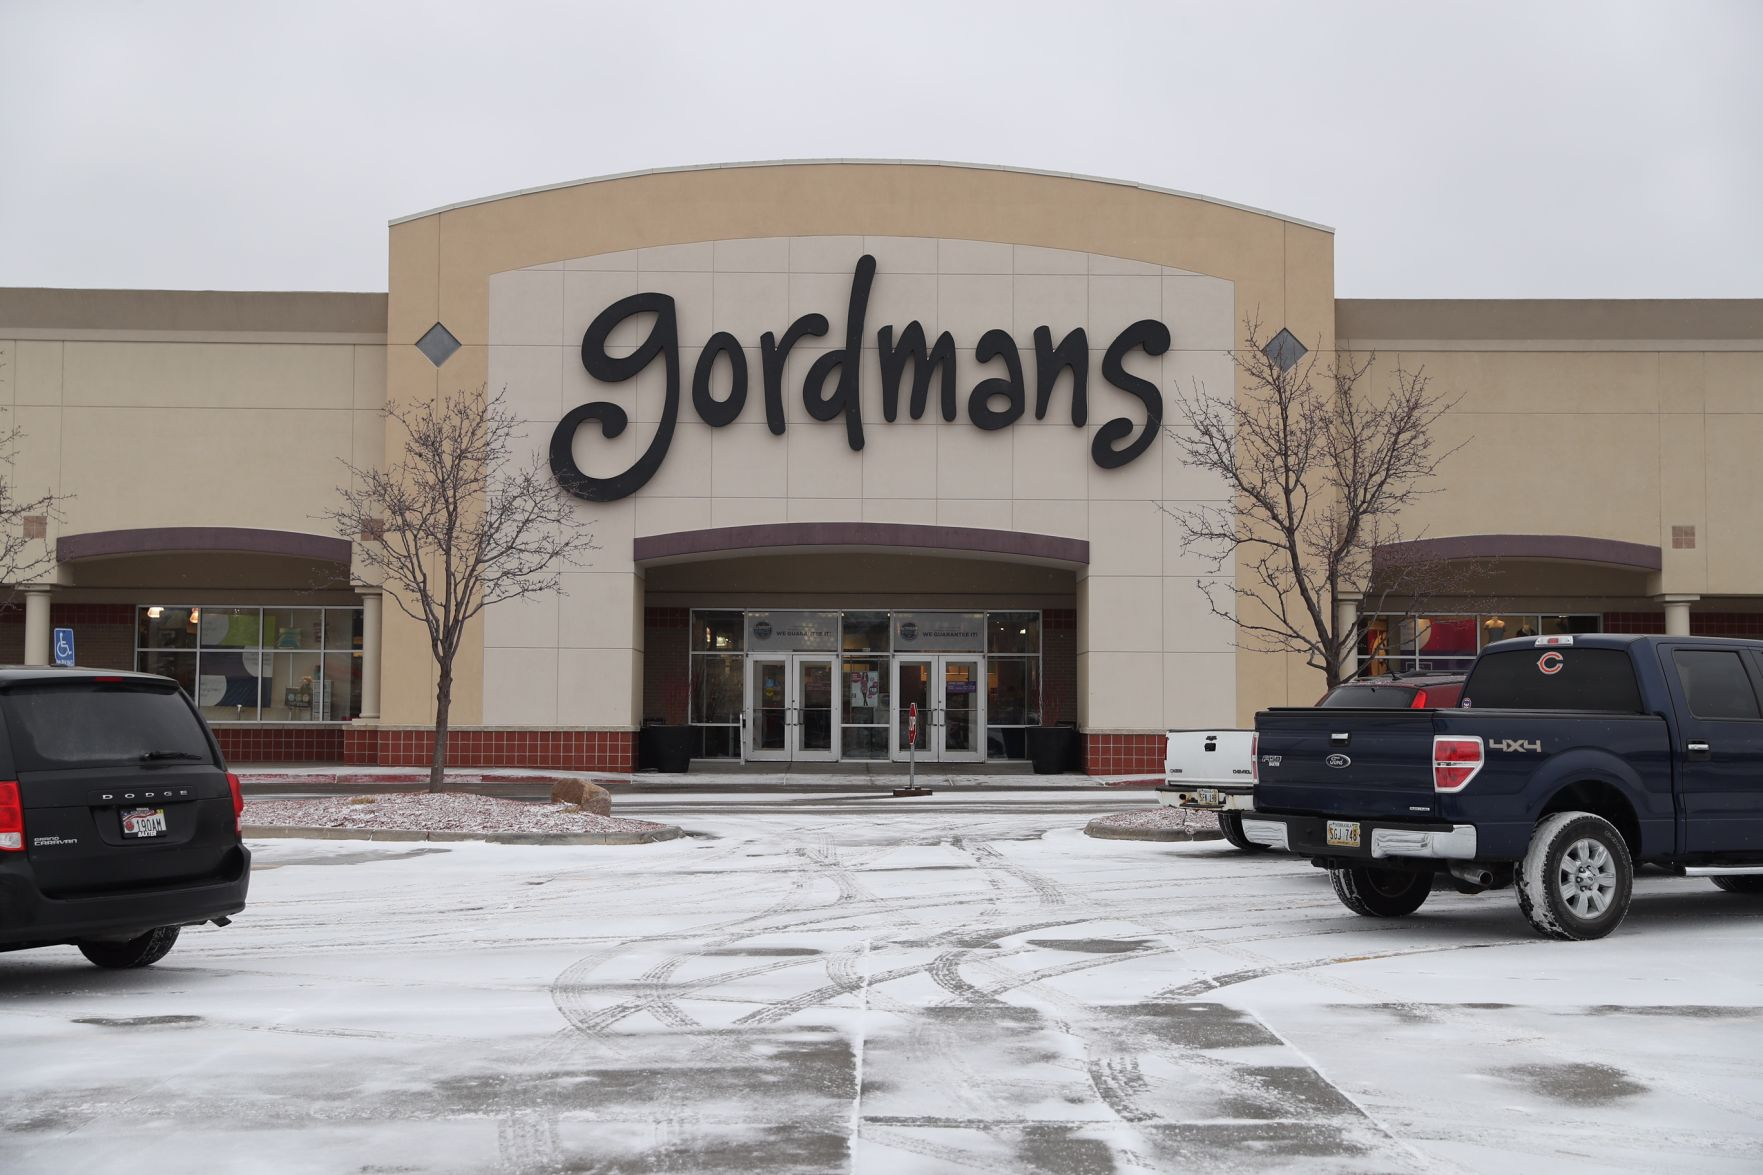 gordmans owes money to werner and possibly nebraska furniture mart rh omaha com